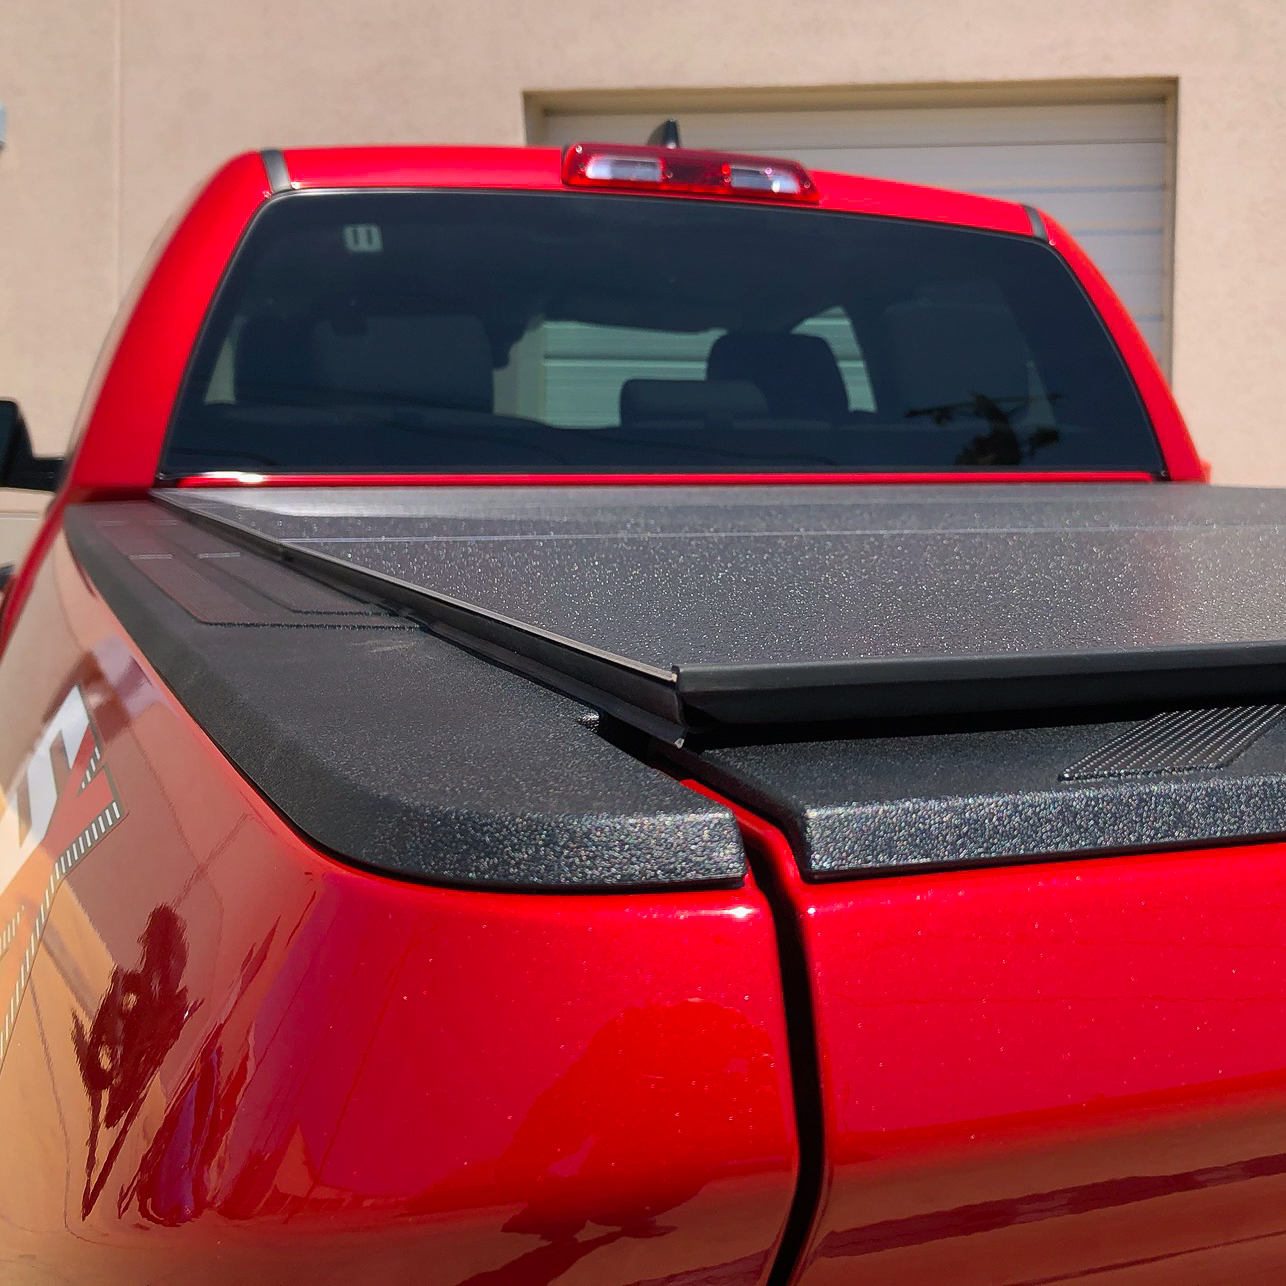 Close-up of covered bed on red truck